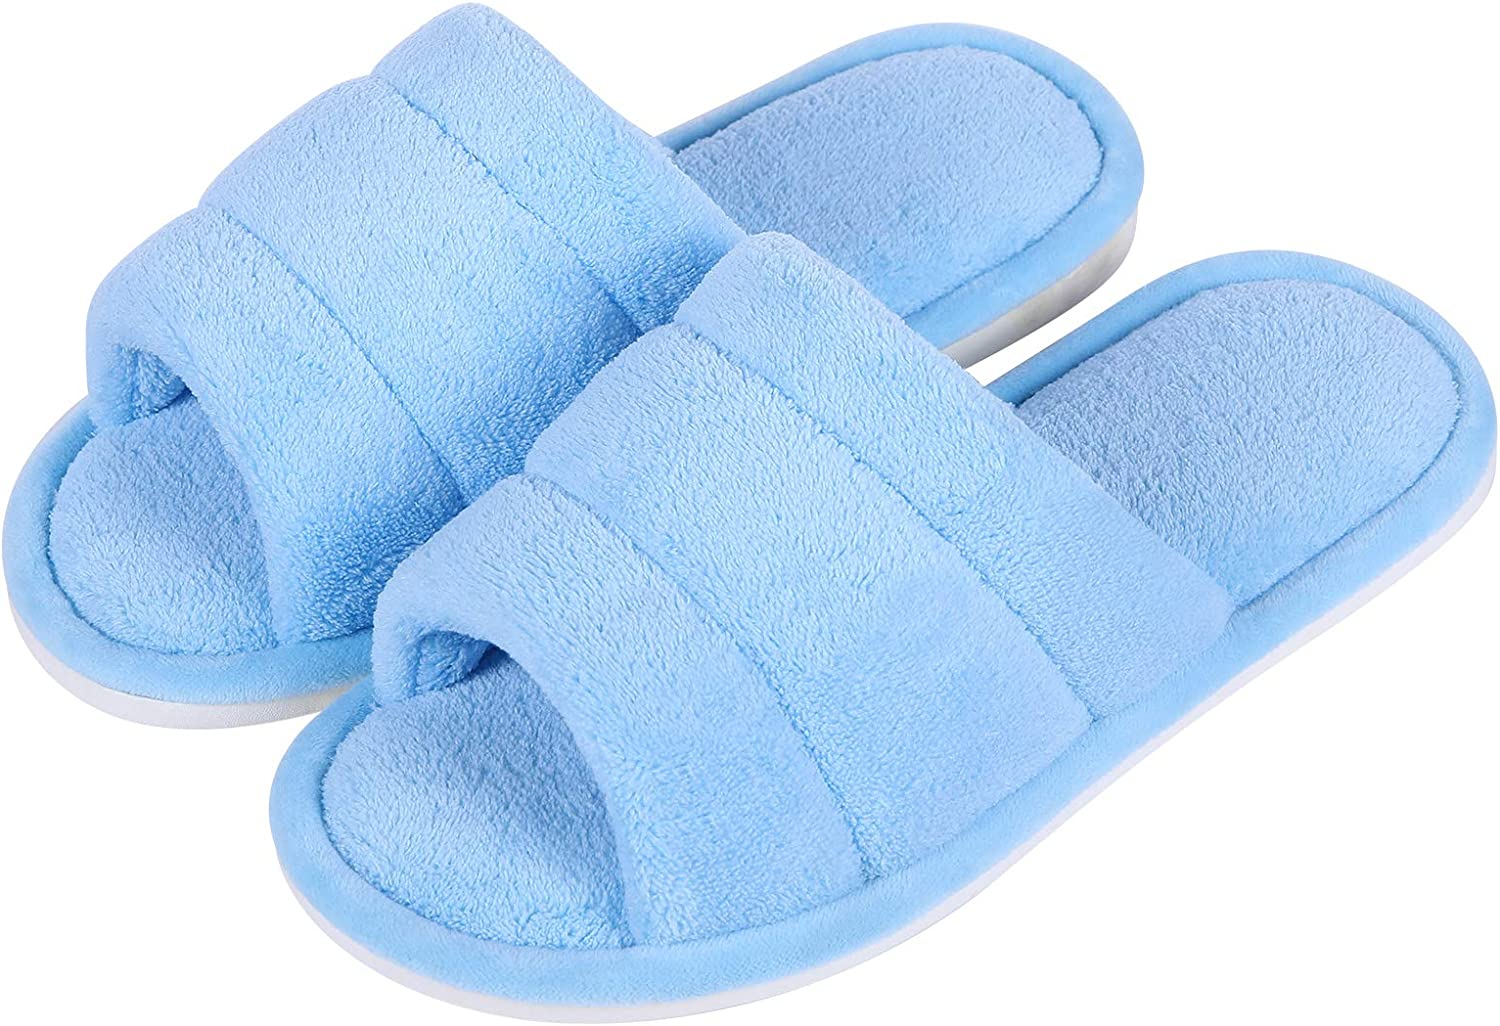 shevalues Terry Cloth Open Toe Max 54% OFF Slippers Women Some reservation Foam Memory Si for